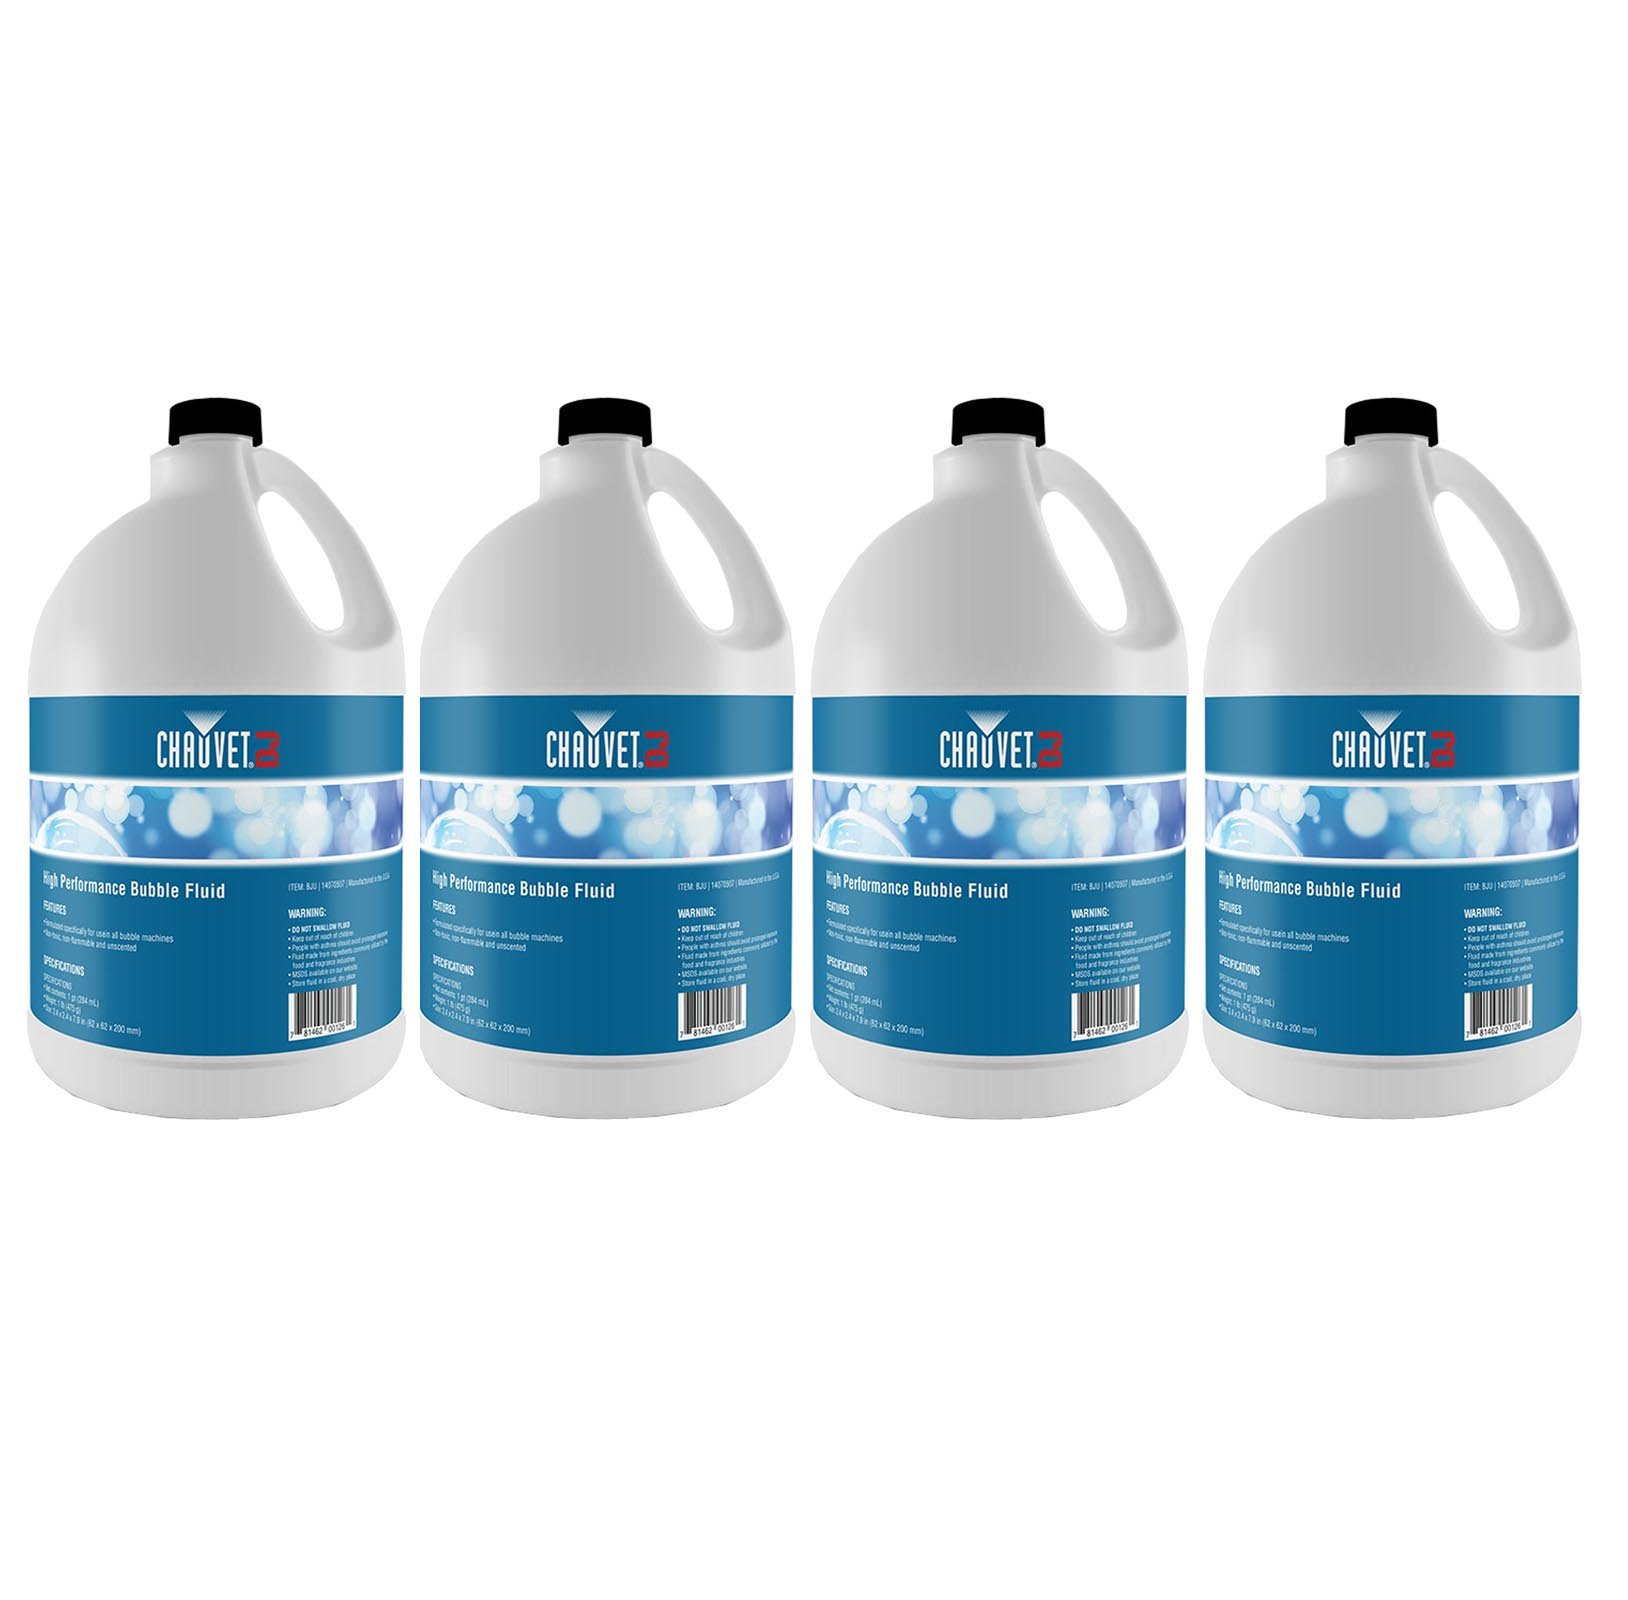 Chauvet High-Performance Non-Staining Bubble Fluid, 1-Gallon (4 Pack) | 4 x BJU